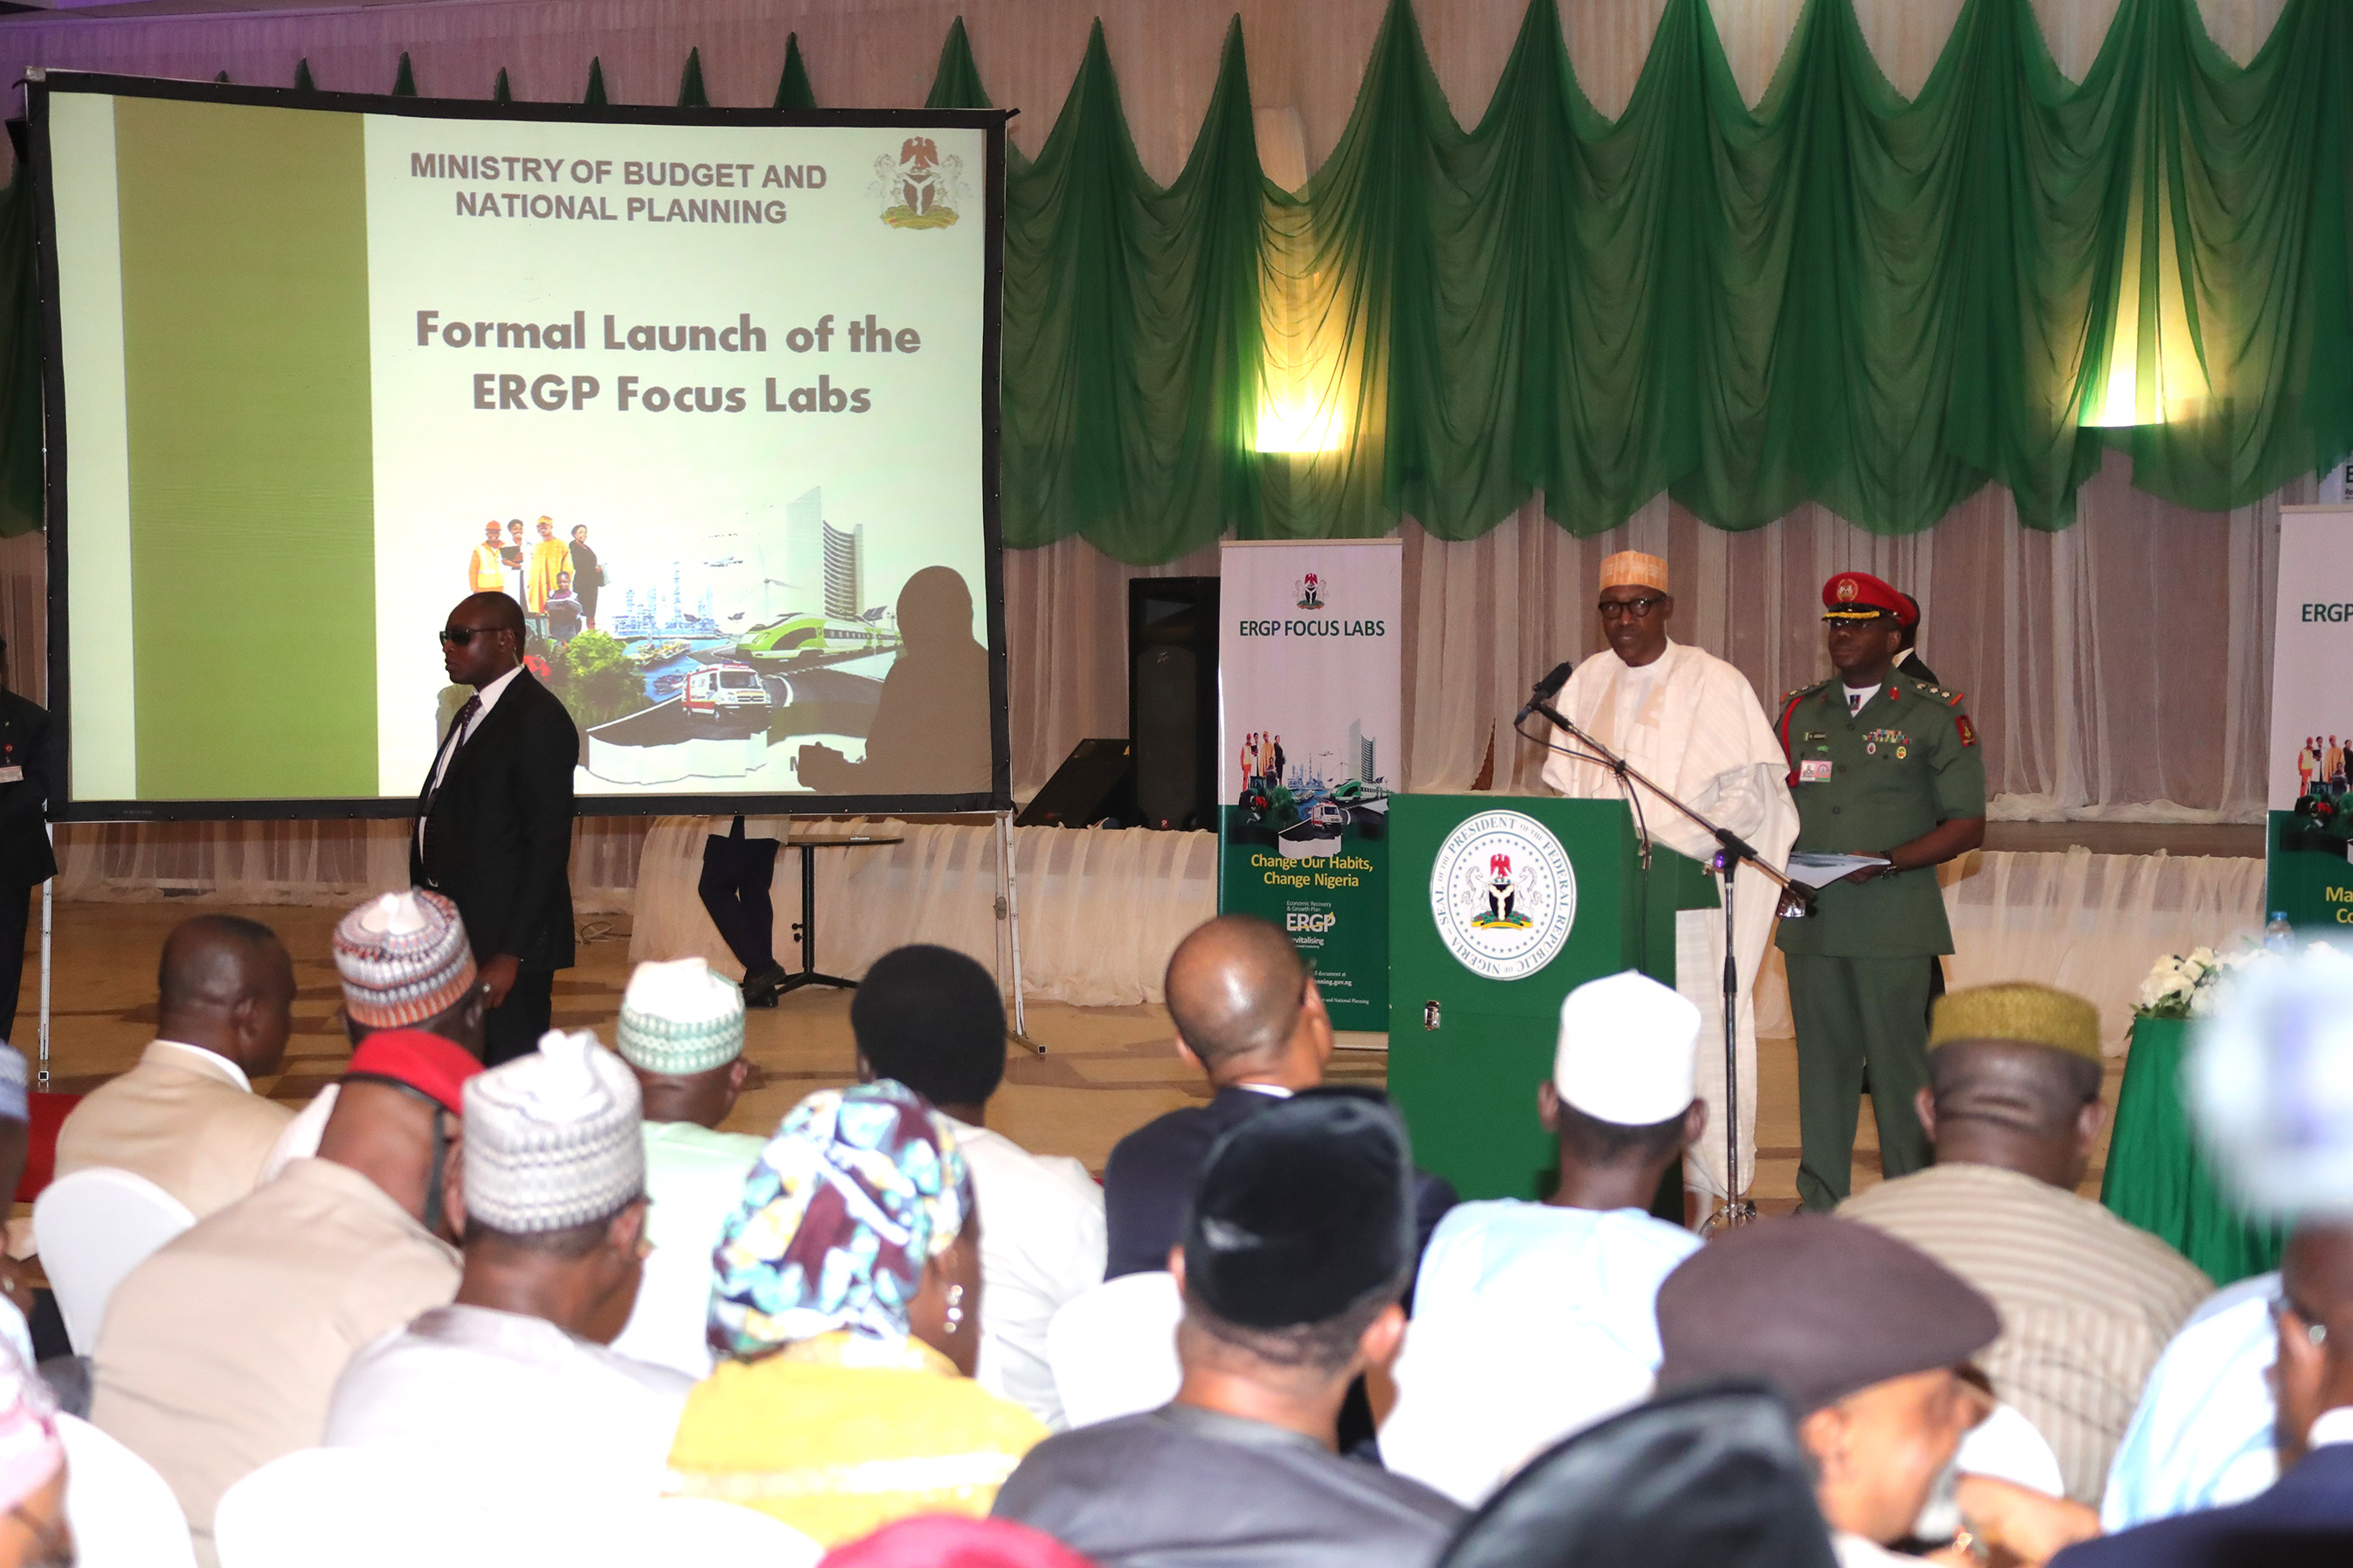 PRESIDENT BUHARI LAUNCH ERGP. 1A, President Muhammadu Buhari addressing the participant during the Formal Launch of the Economic Recovery & Growth Plan 2017-2020 (ERGP) LABS held Banquet Hall State House, Abuja. PHOTO; SUNDAY AGHAEZE. MAR 13 2018